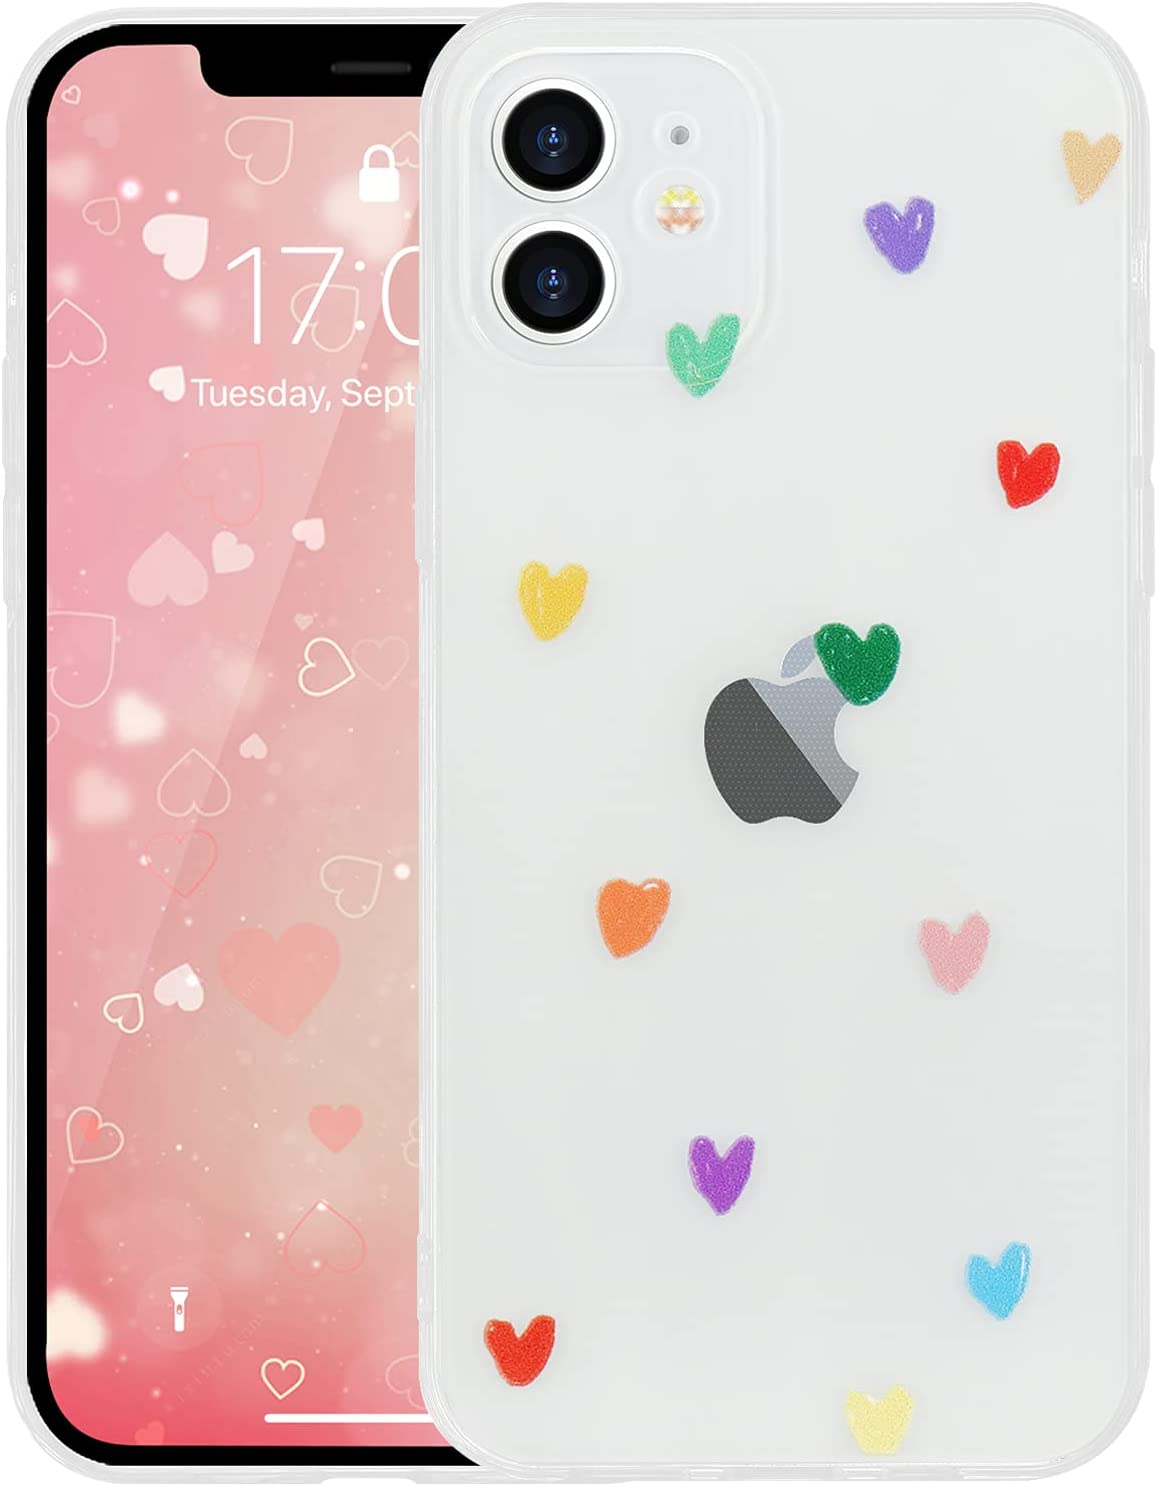 Urarssa Compatible with iPhone 12 Case Cute Love Heart Pattern Crystal Clear Transparent Design for Women Girls Soft TPU Bumper Shockproof Protective Cover for iPhone 12 6.1 inch, Solid Heart